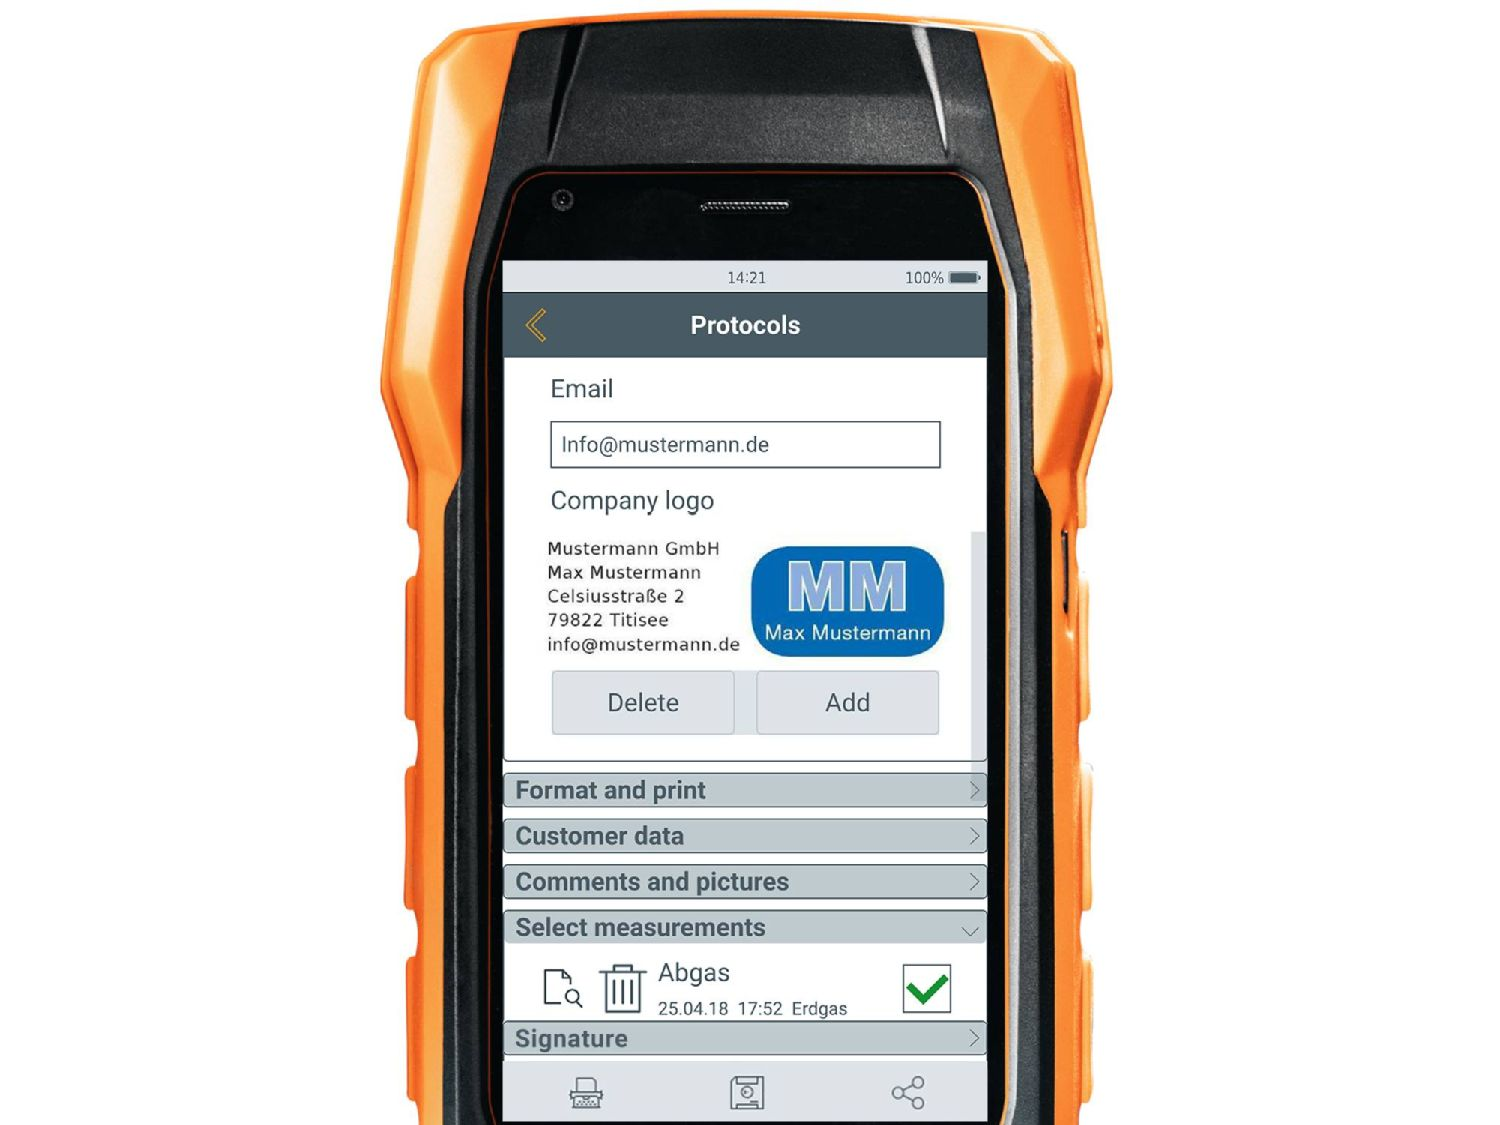 testo 300 flue gas analyzer reports